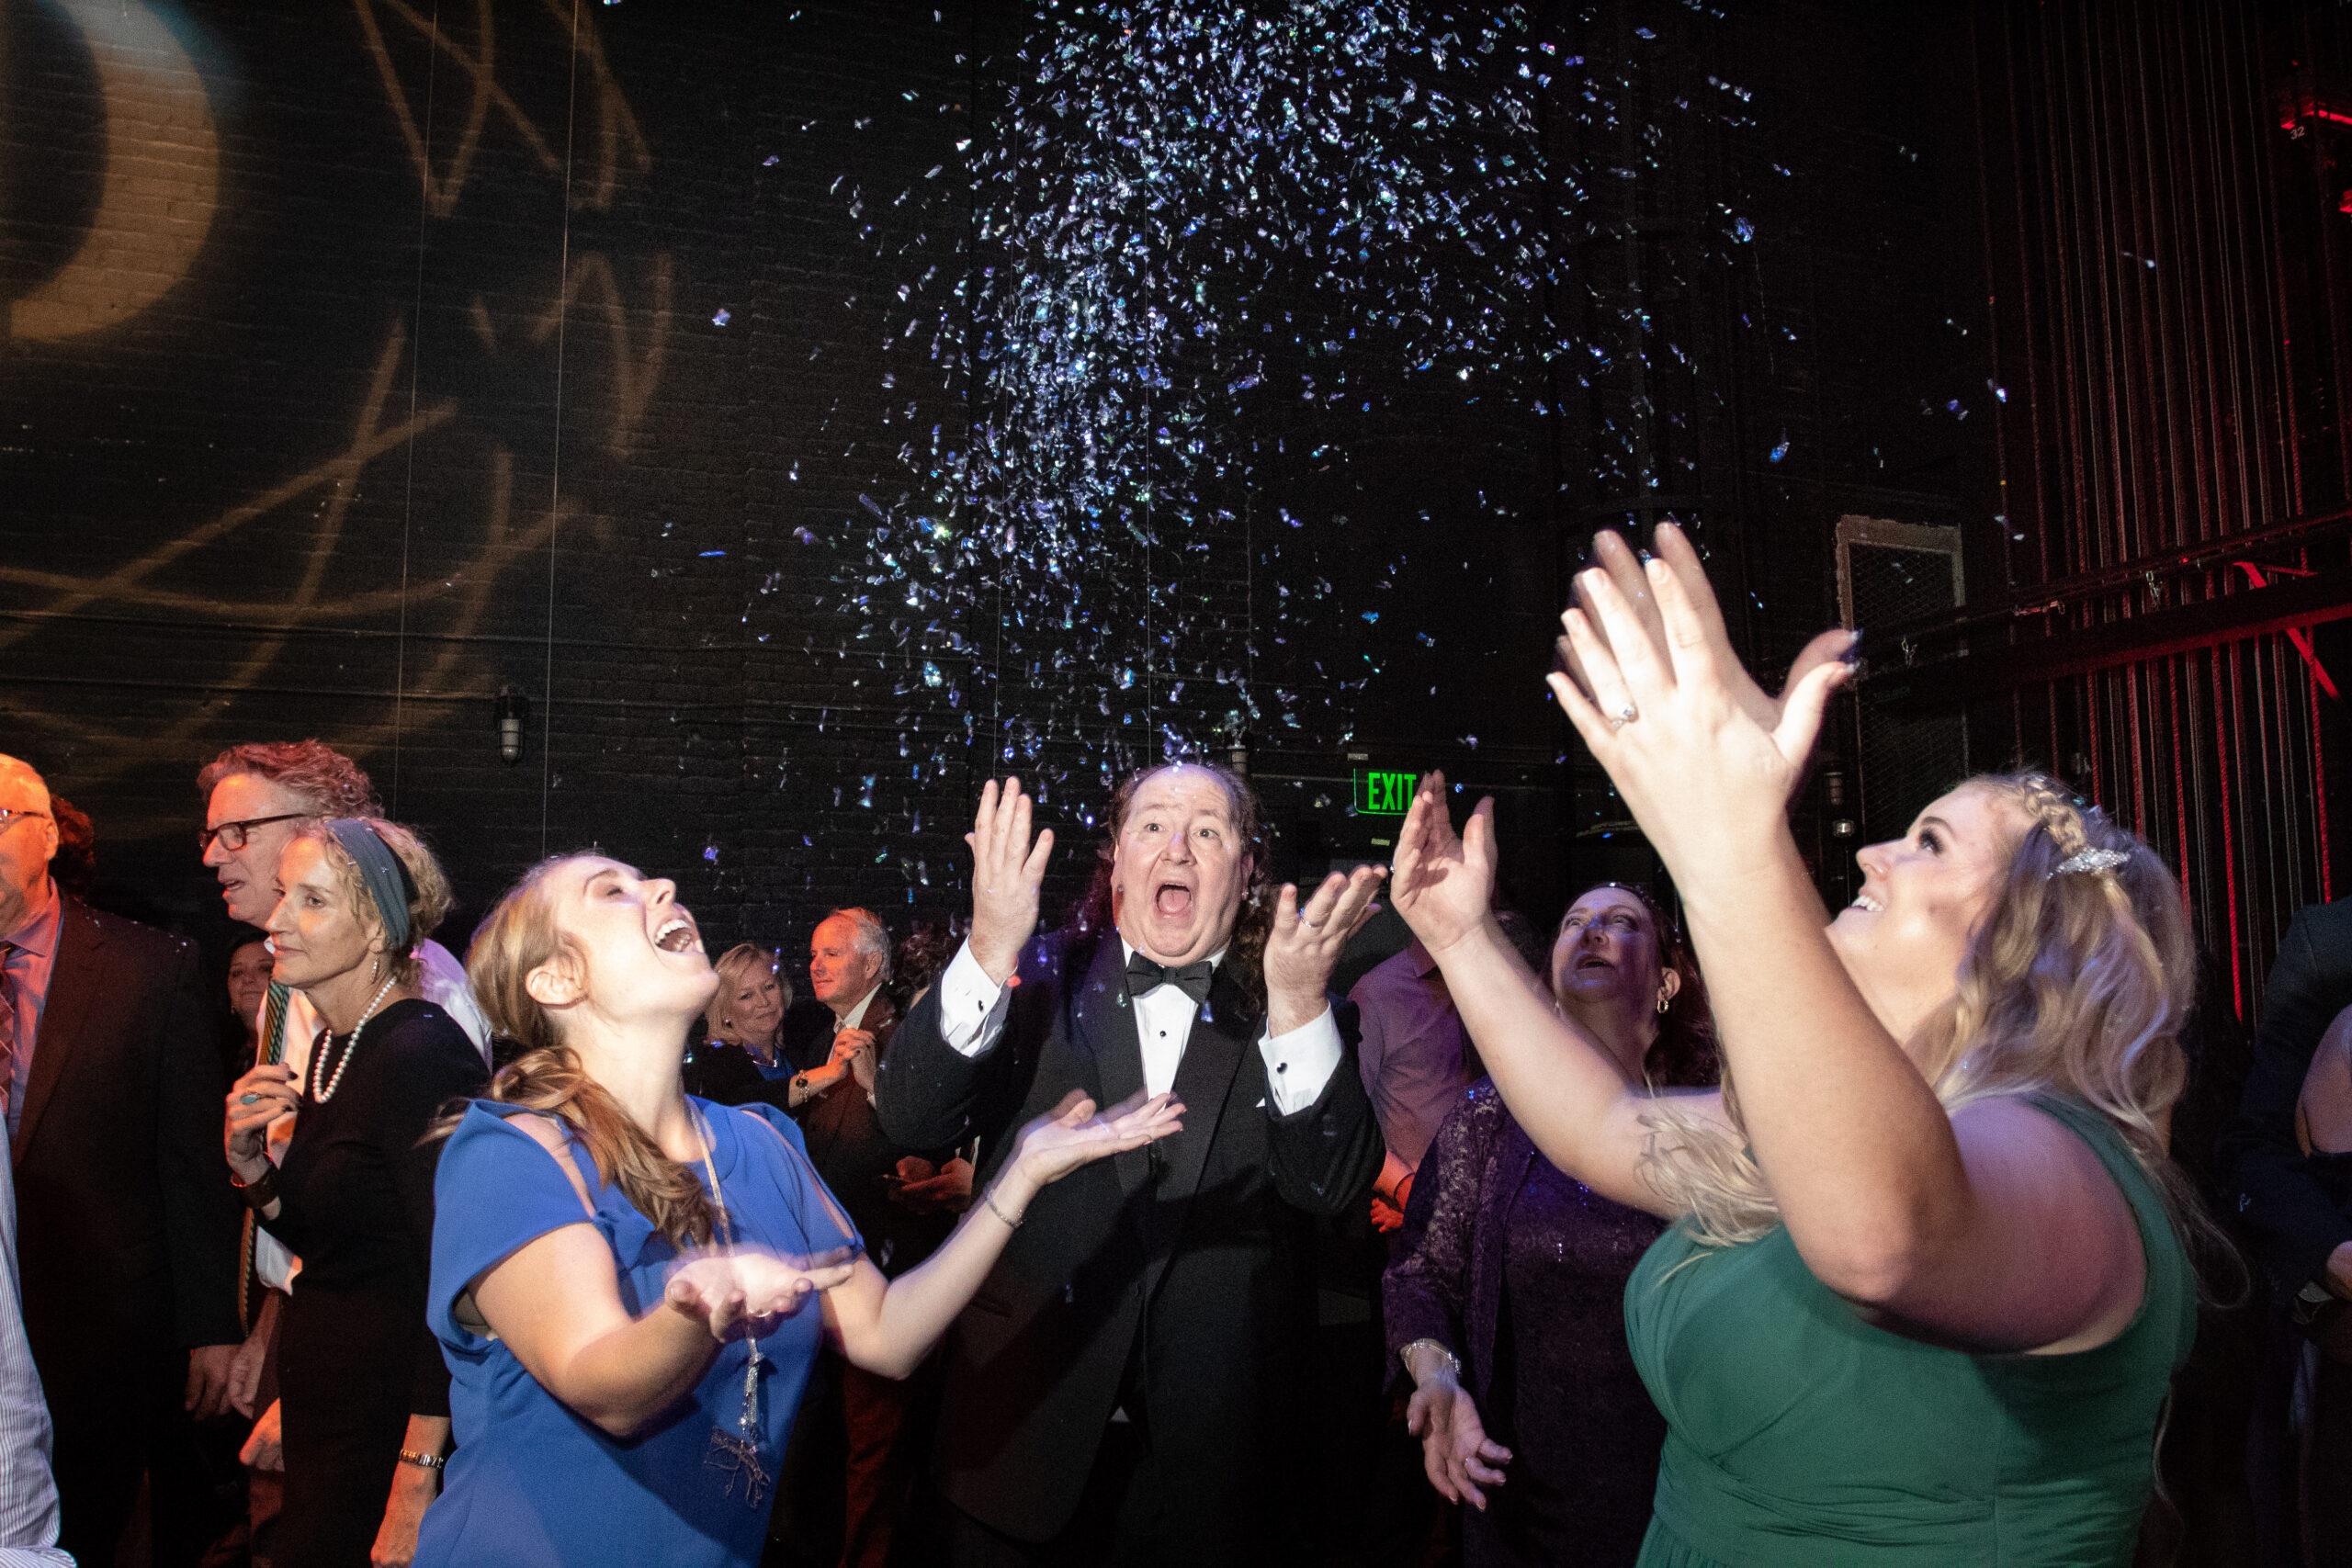 Happy wedding guests on dance floor throwing up confetti